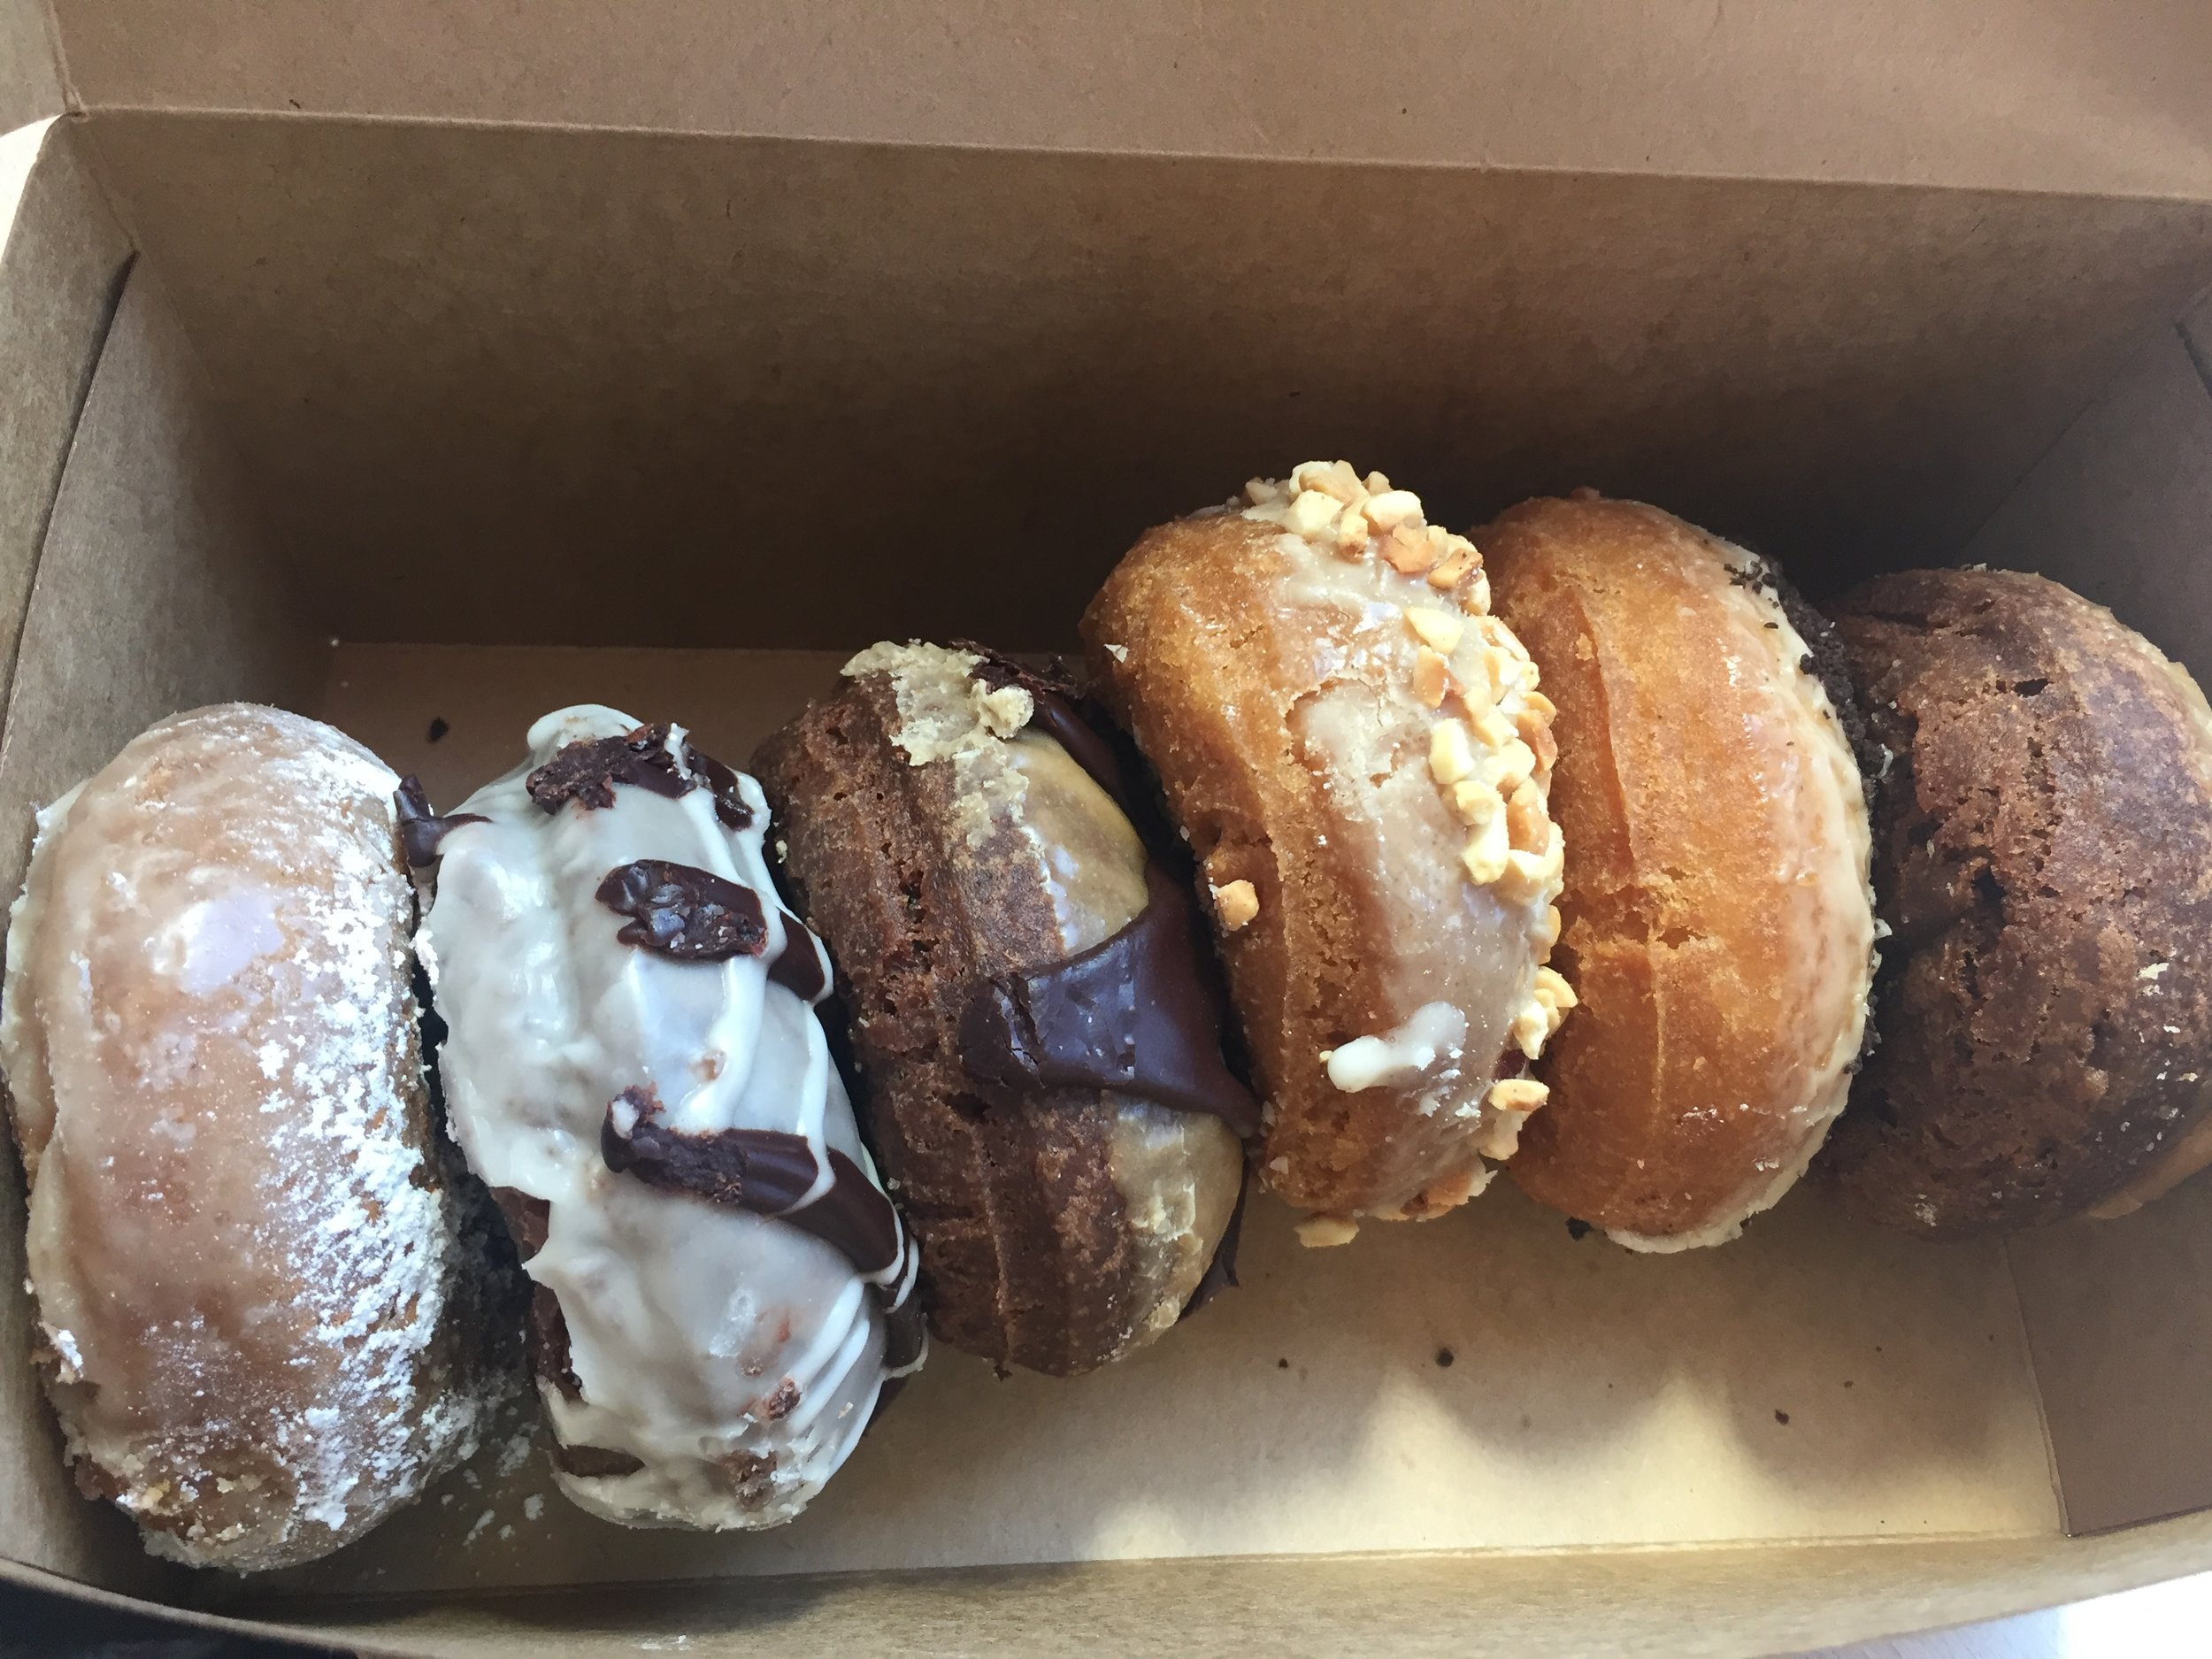 Vegan donuts from Mighty-O Donuts